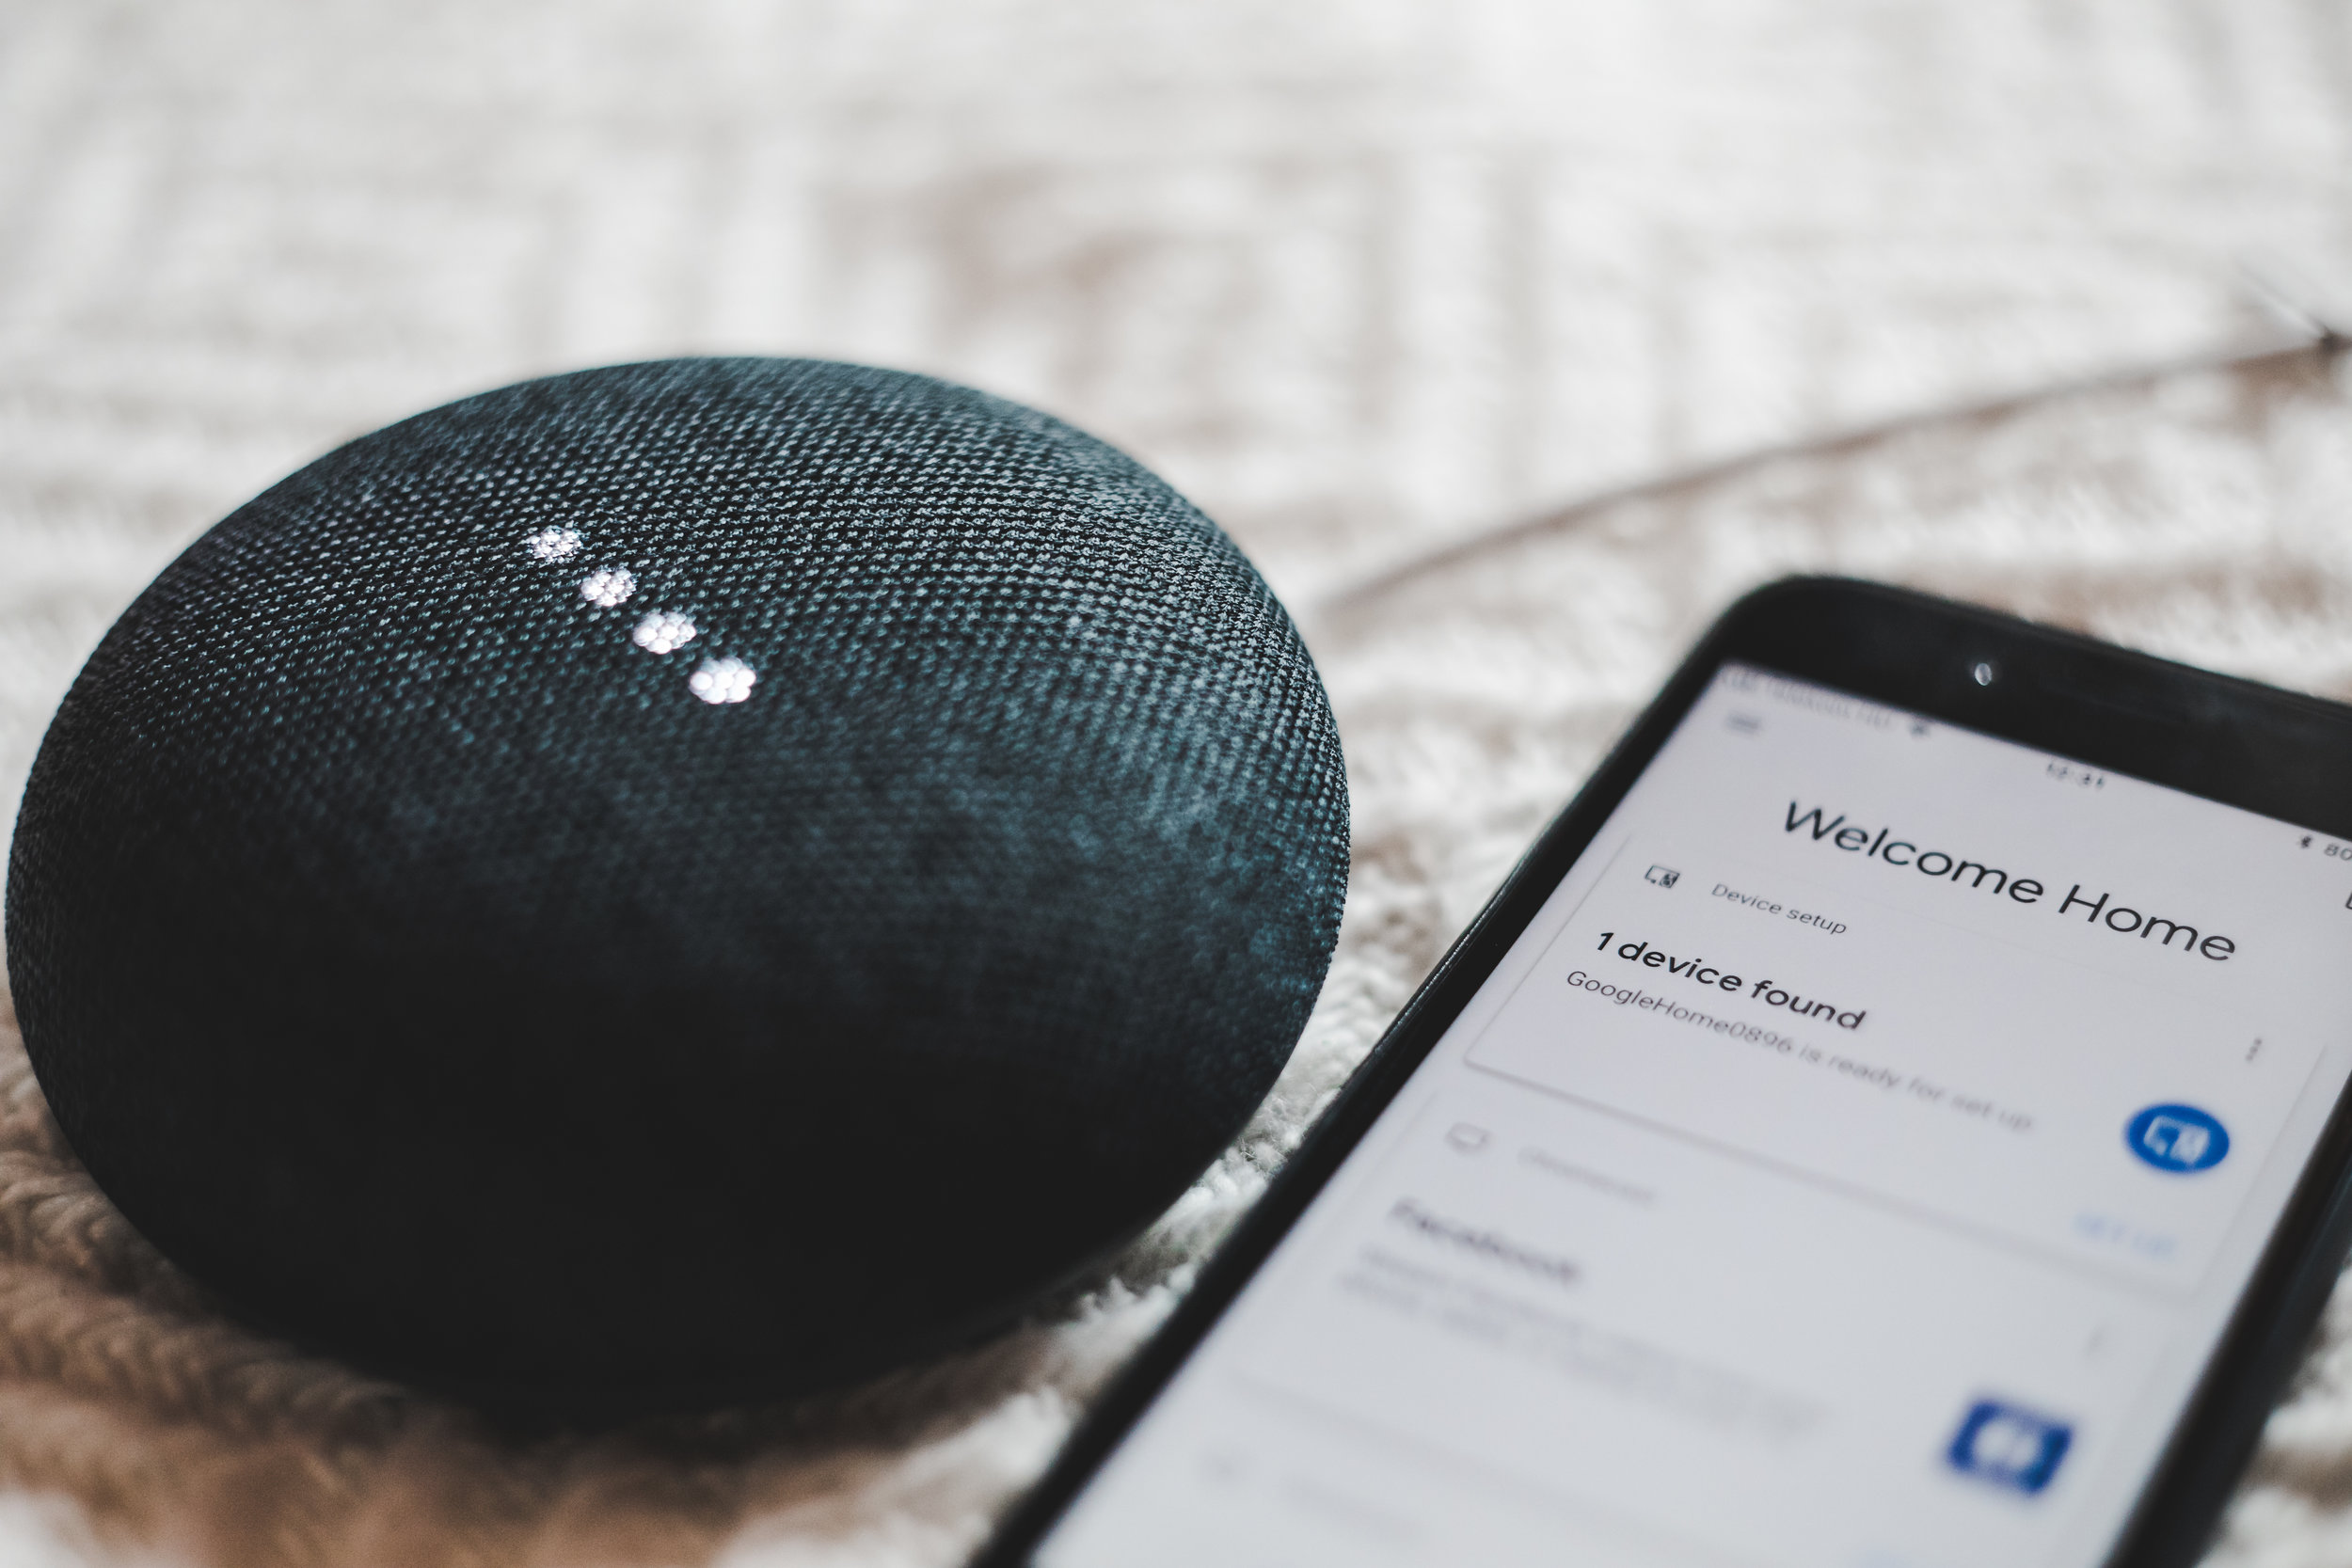 Spotify is giving its Premium subscribers a free Google Home device. What's that all about?